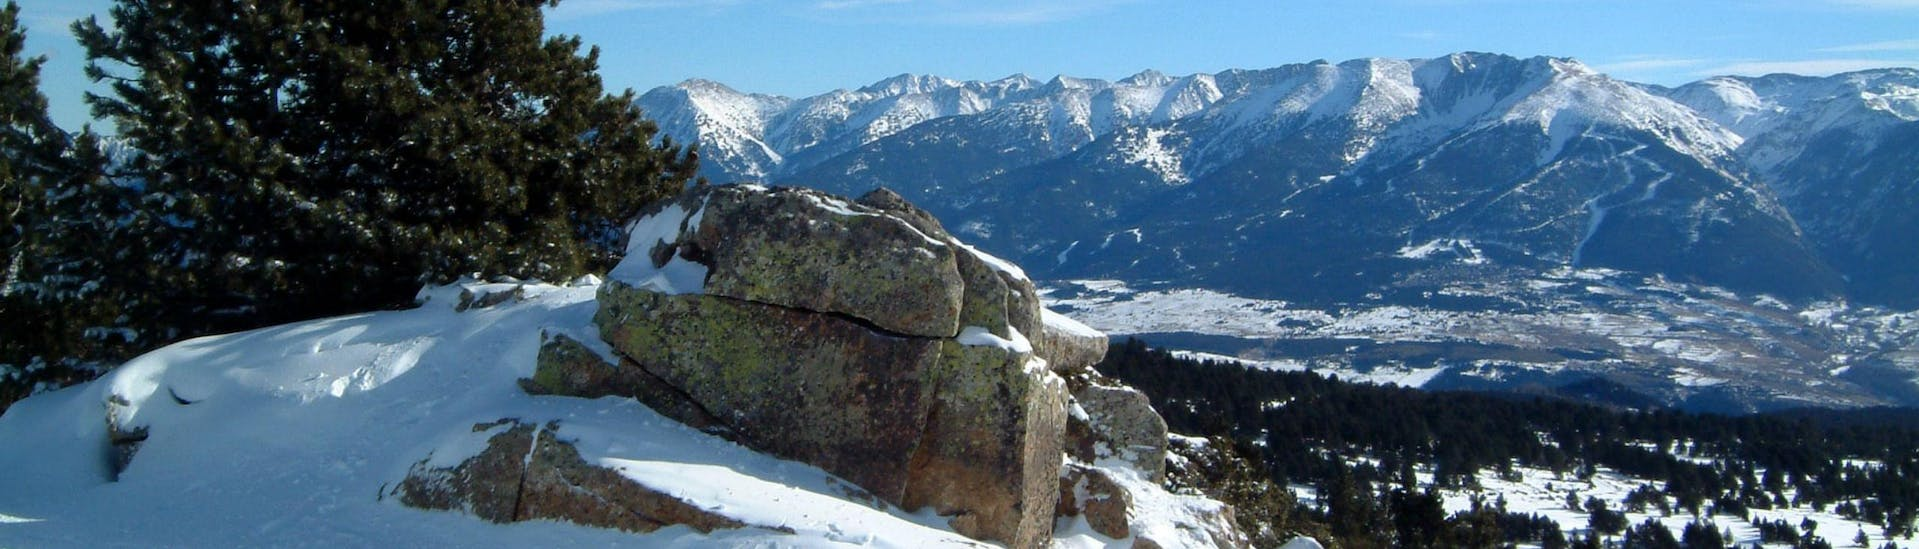 An image of the snow-covered landscape of Font Romeu Pyrénées 2000, where local ski schools offer a wide variety of ski lessons for anyone who wants to learn to ski.